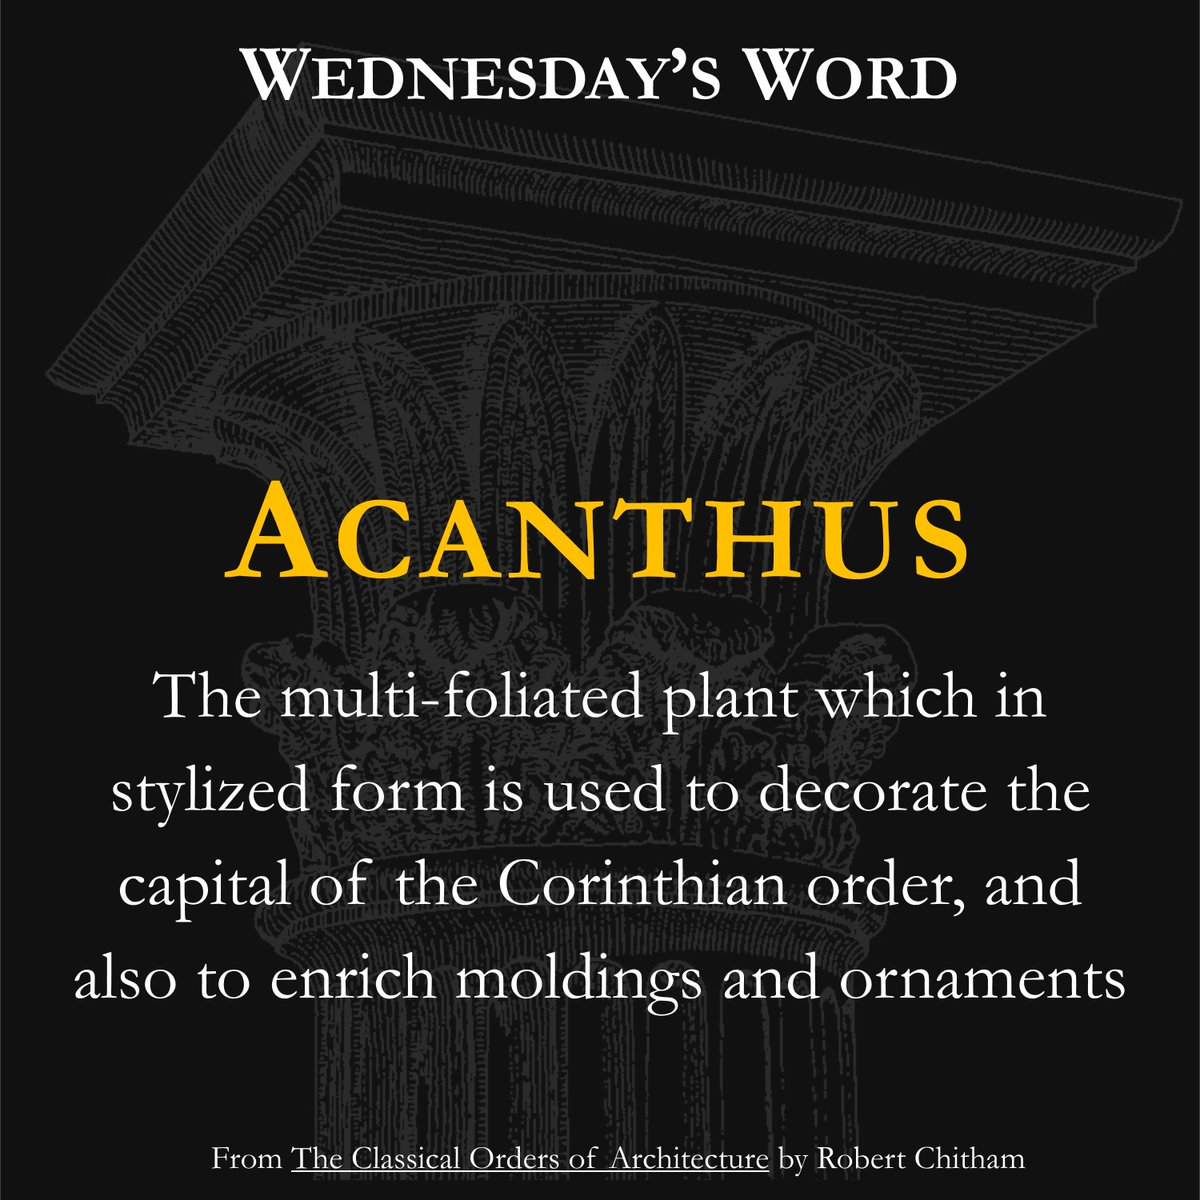 #Columns  #Chadsworth  #1_800_Columns  #TheColumnGuy  #ICAA  #Classicism  #ClassicalArchitecture  #TraditionalArchitecture  #WordoftheDay  #WednesdaysWord  #ArchitecturalDetails  #Architecture  #Education  #Learning  #TheMoreYouKnow  #Wednesday  #Definition  #WednesdayWisdom  #CorinthianOrder